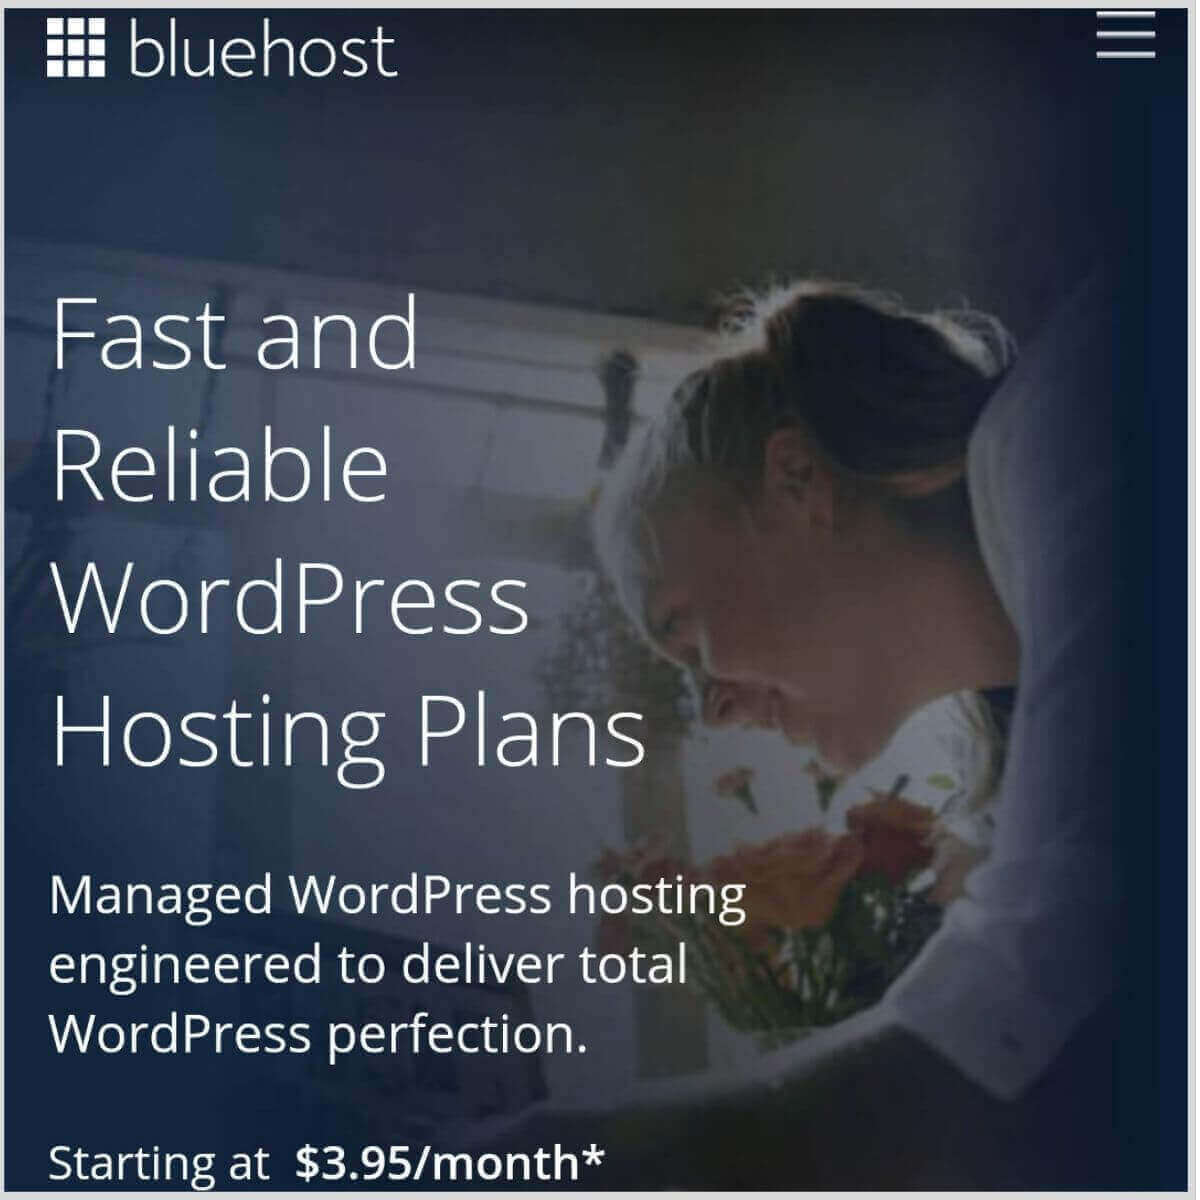 Bluehost frontpage